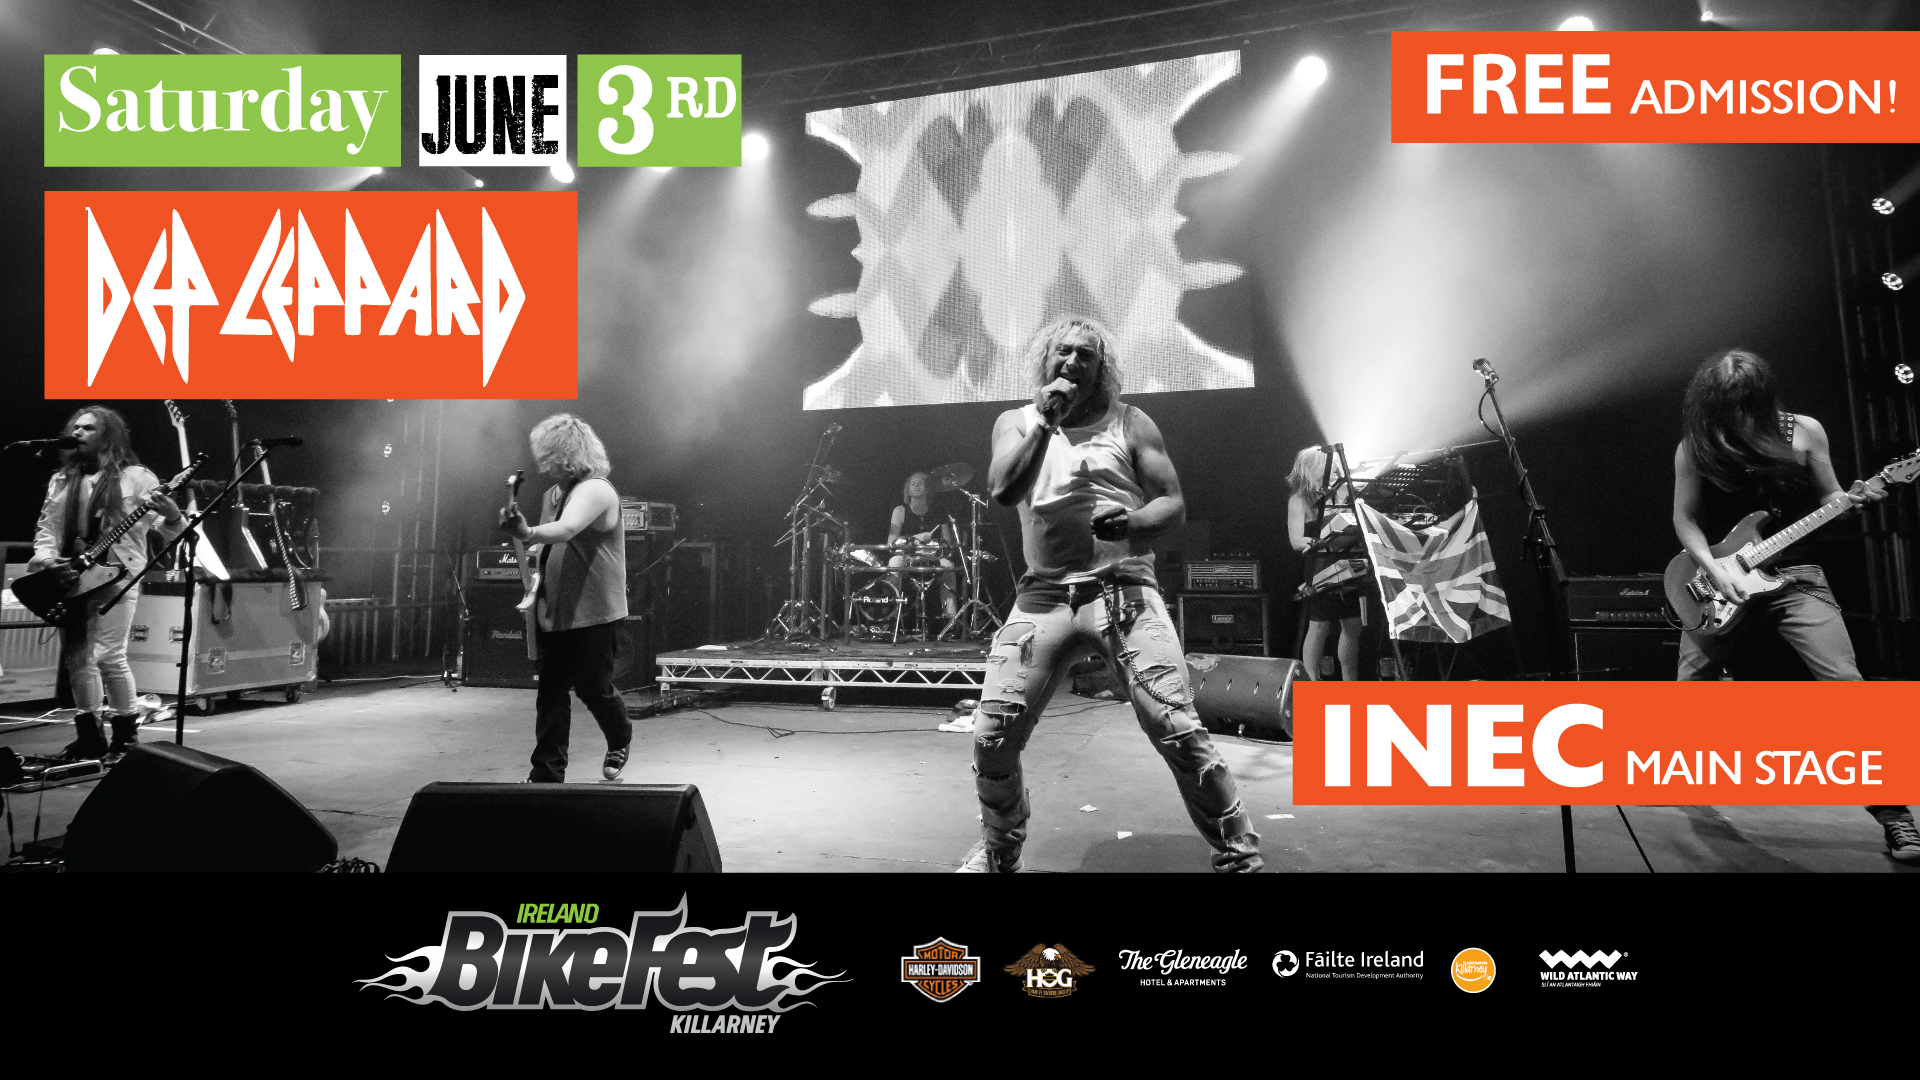 Ireland-BikeFest-Entertainment-Screen-Dep-Leppard-Saturday-3rd-June-1920-1080